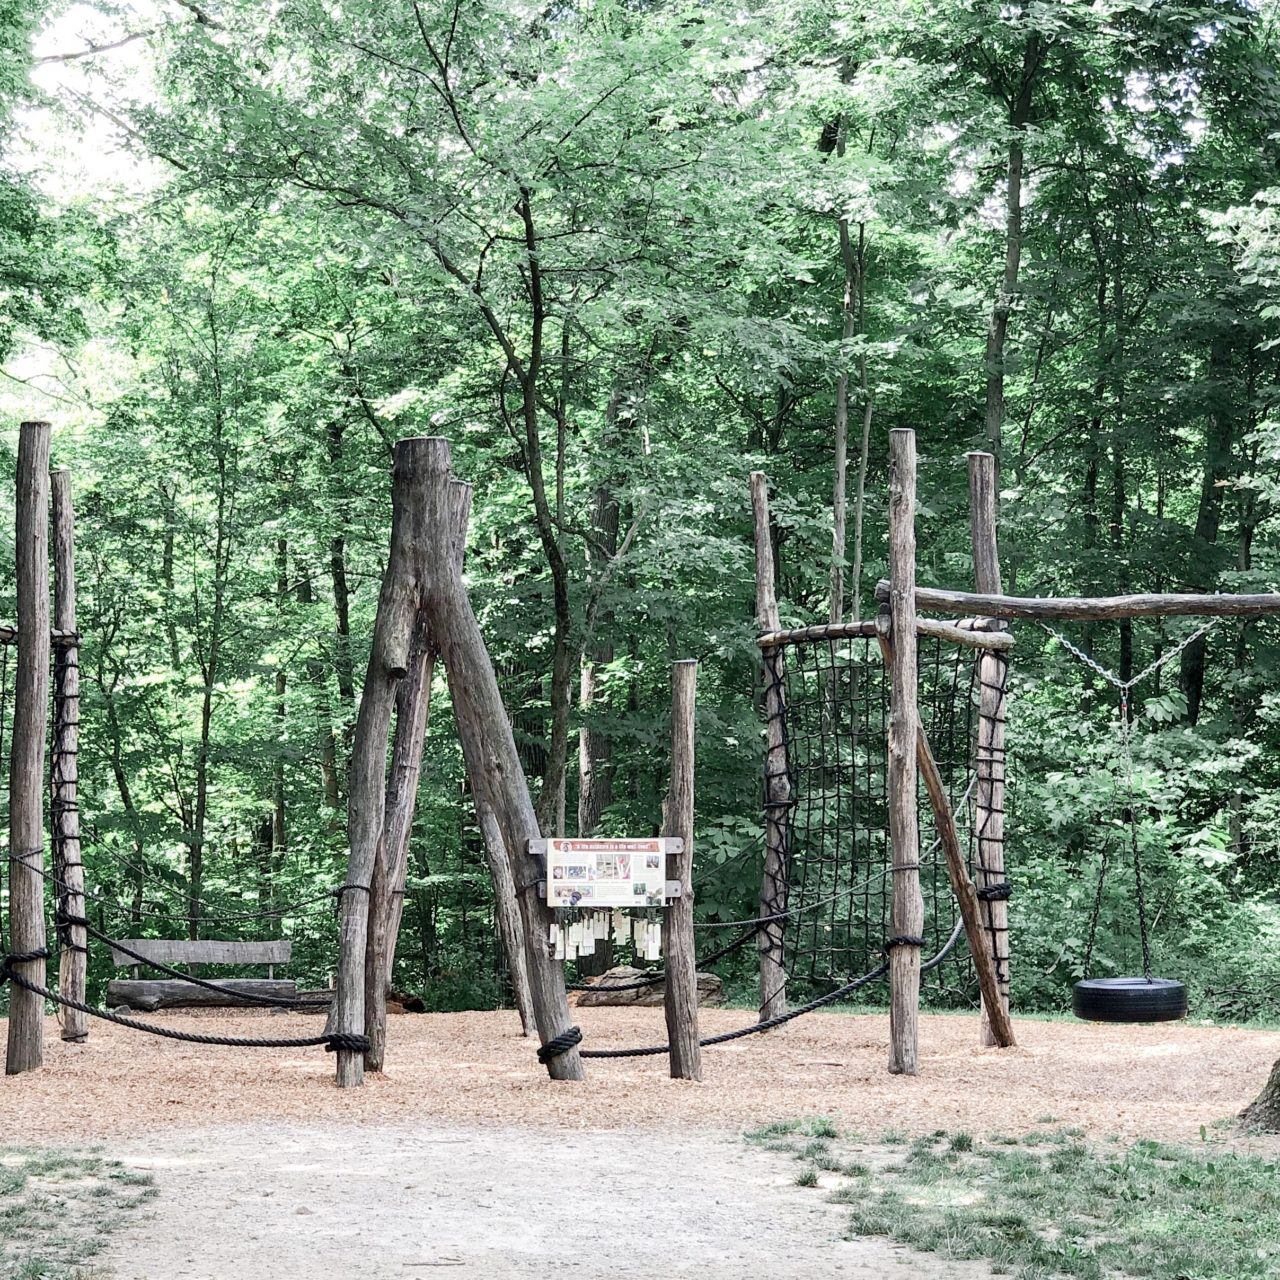 Natural Play Area at Blendon Woods Metro Park